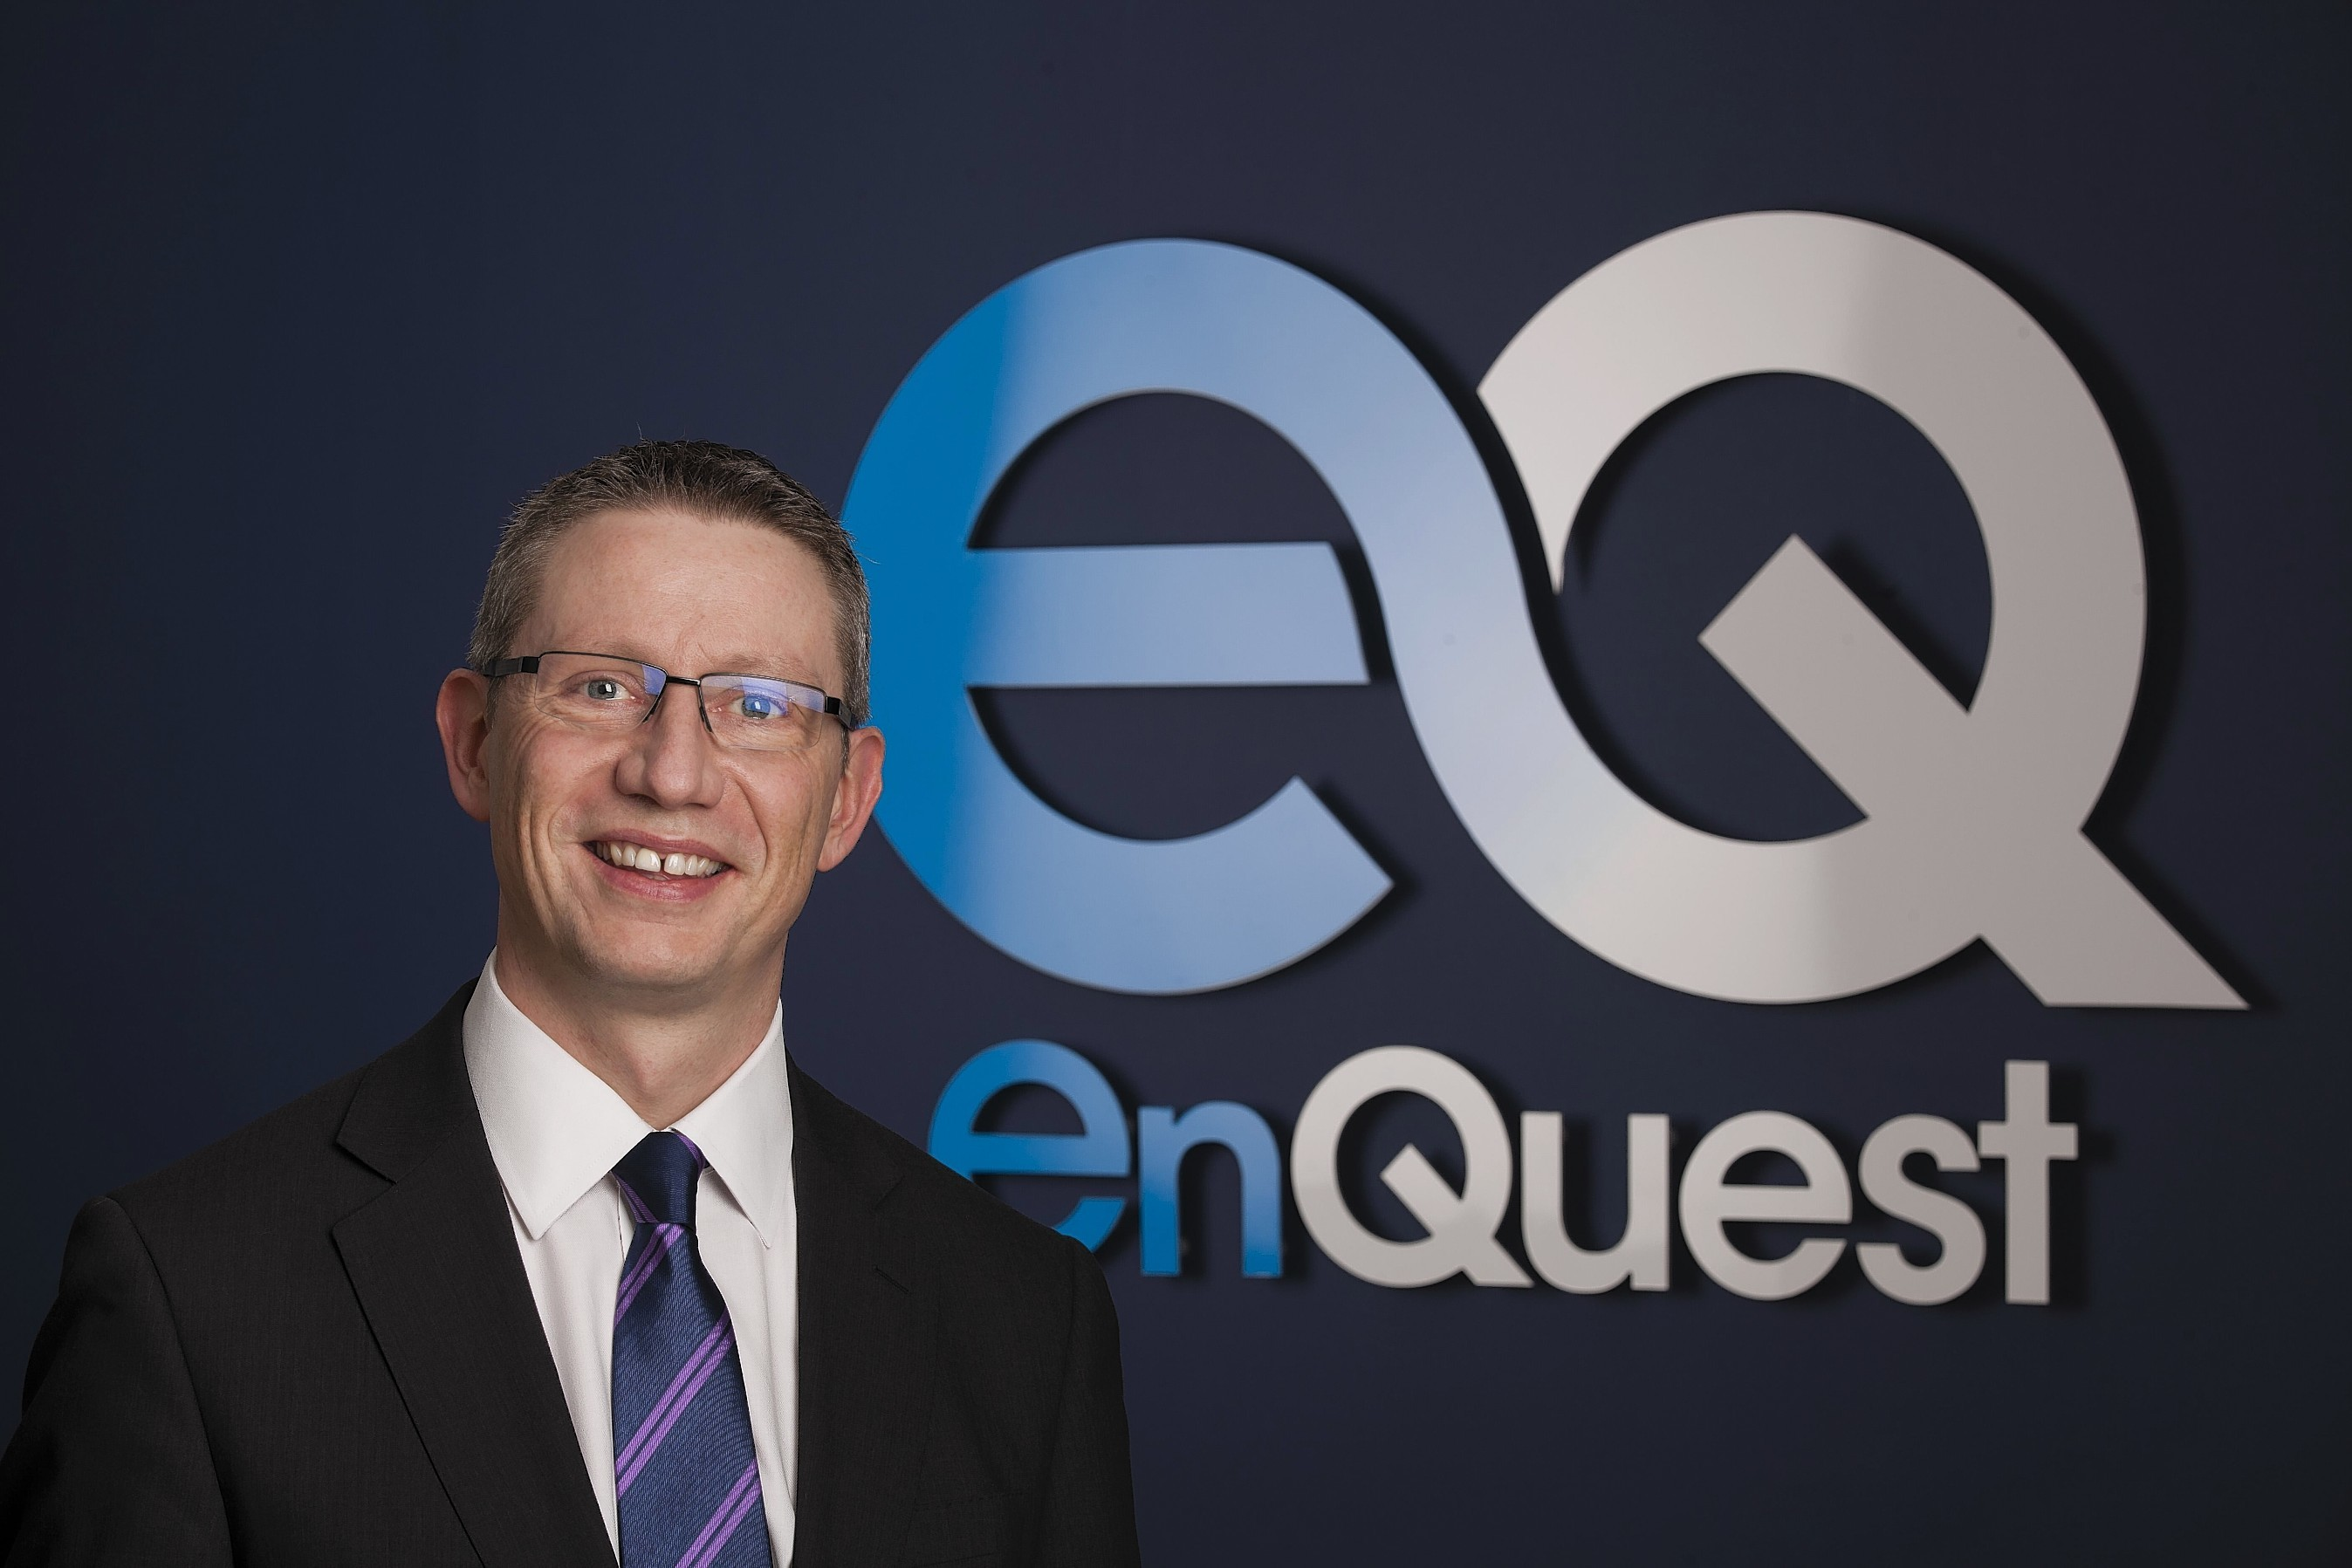 Neil McCulloch, EnQuest chief operating officer